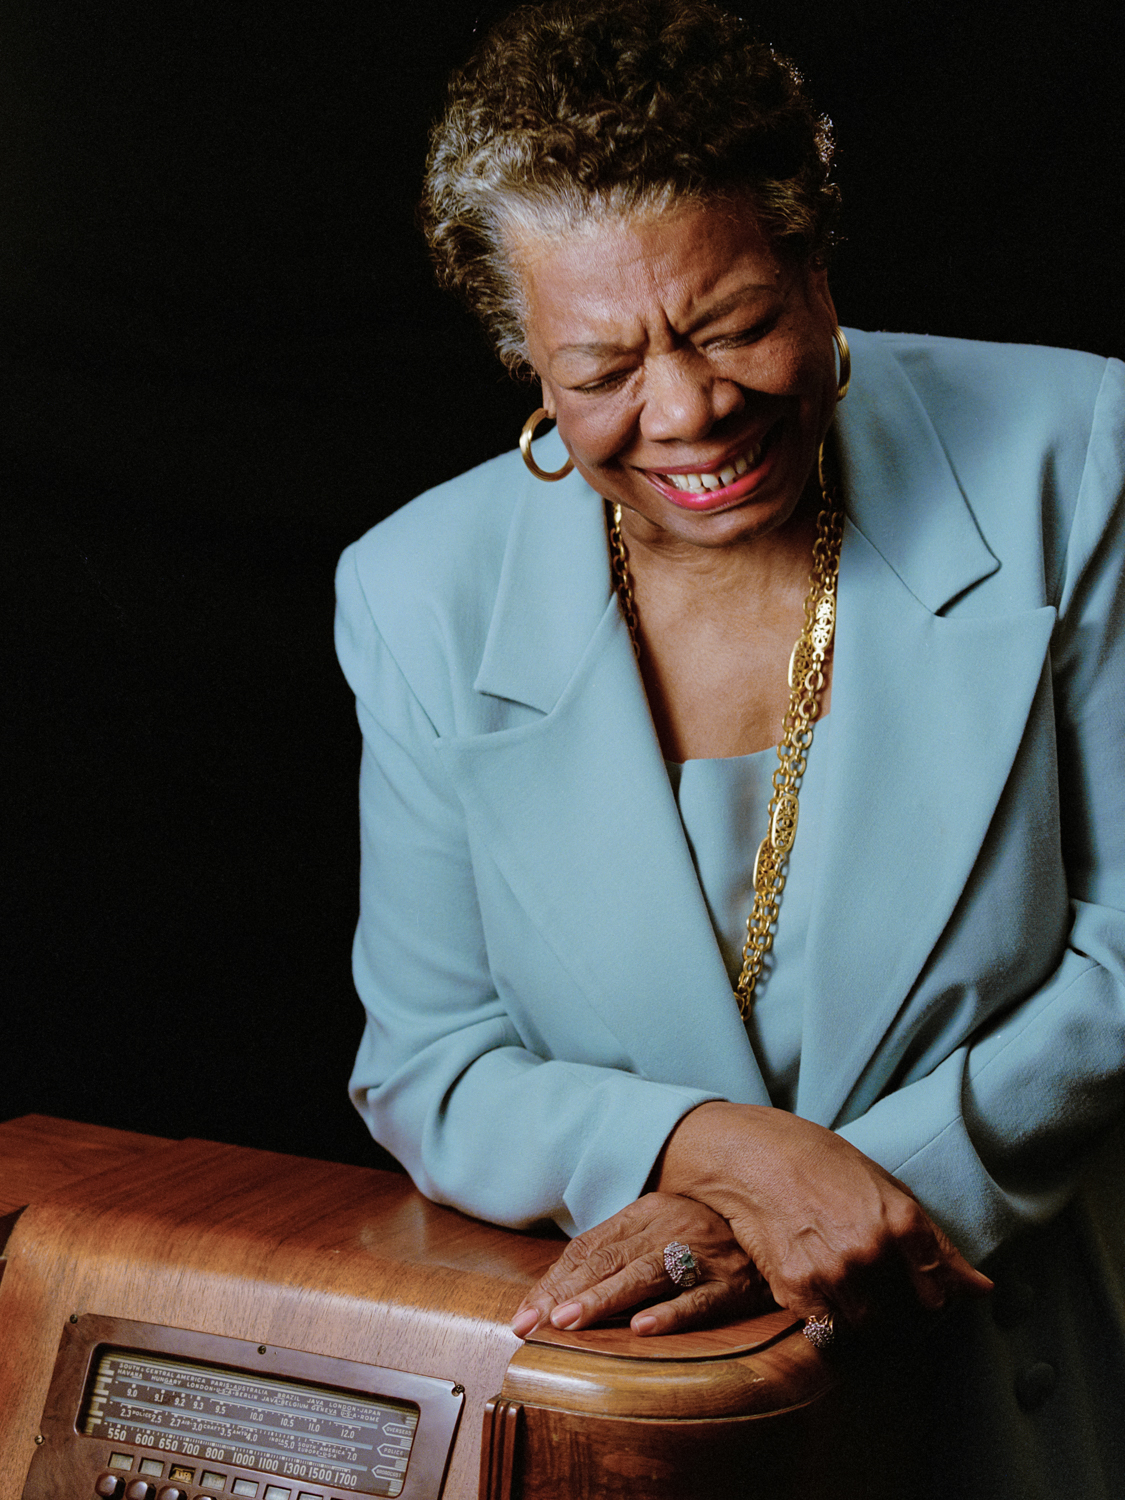 Images of Maya Angelou by Palm Springs photographer Tim Courtney at TimCourtneyPhotography.com